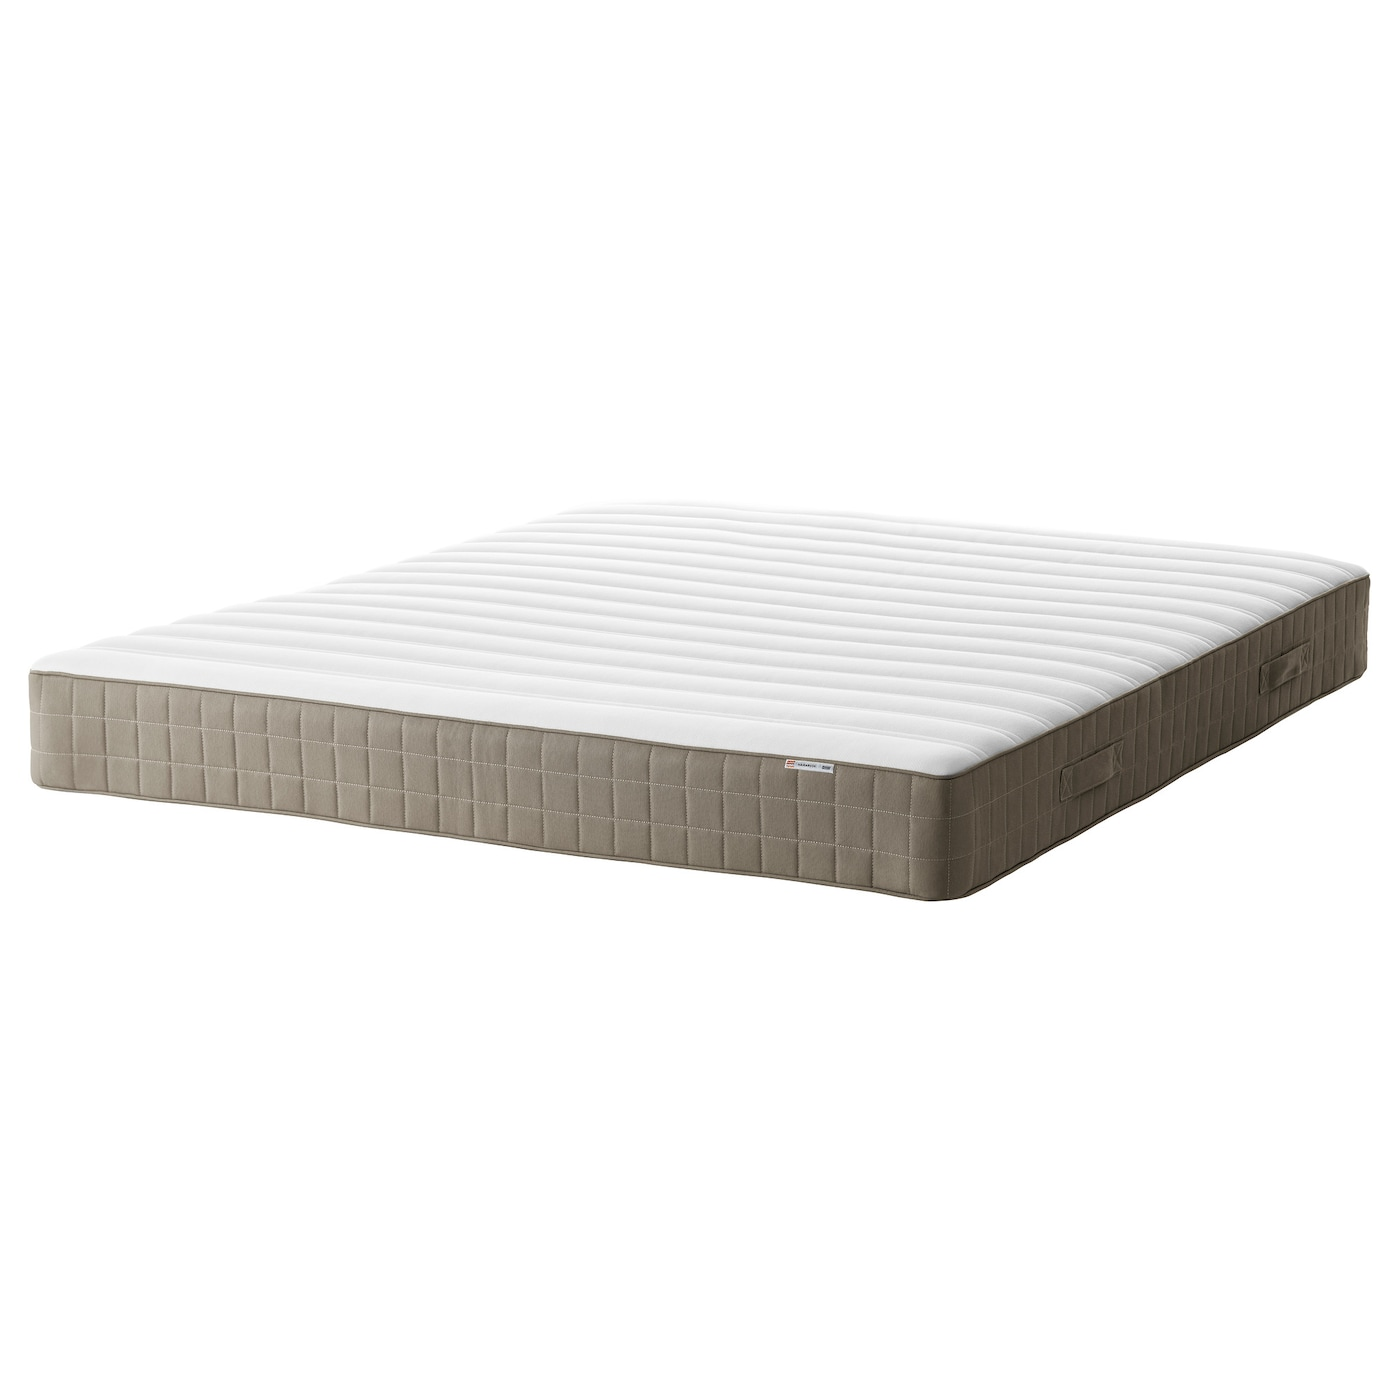 hamarvik matelas ressorts mi ferme beige fonc 160x200 cm ikea. Black Bedroom Furniture Sets. Home Design Ideas